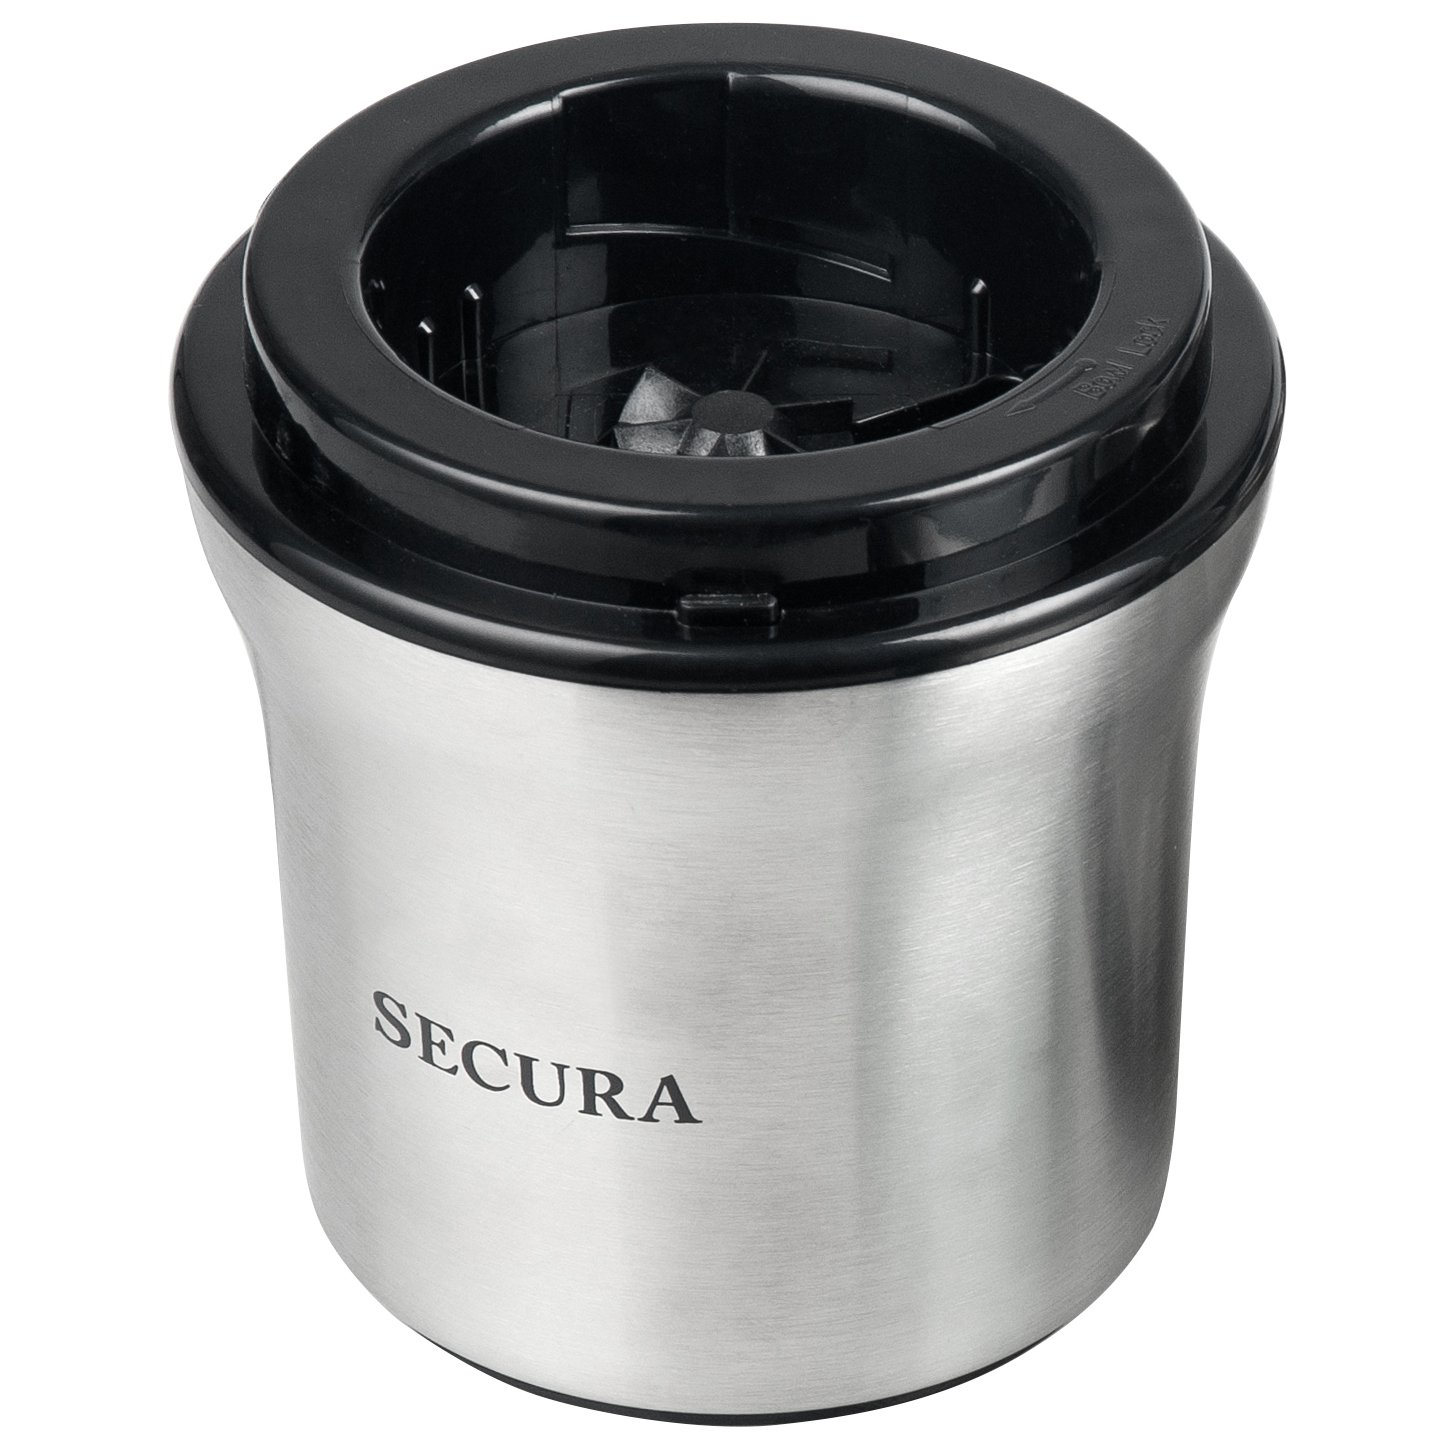 Secura Electric Coffee Spice Grinder Power Base for Model #SP-7412